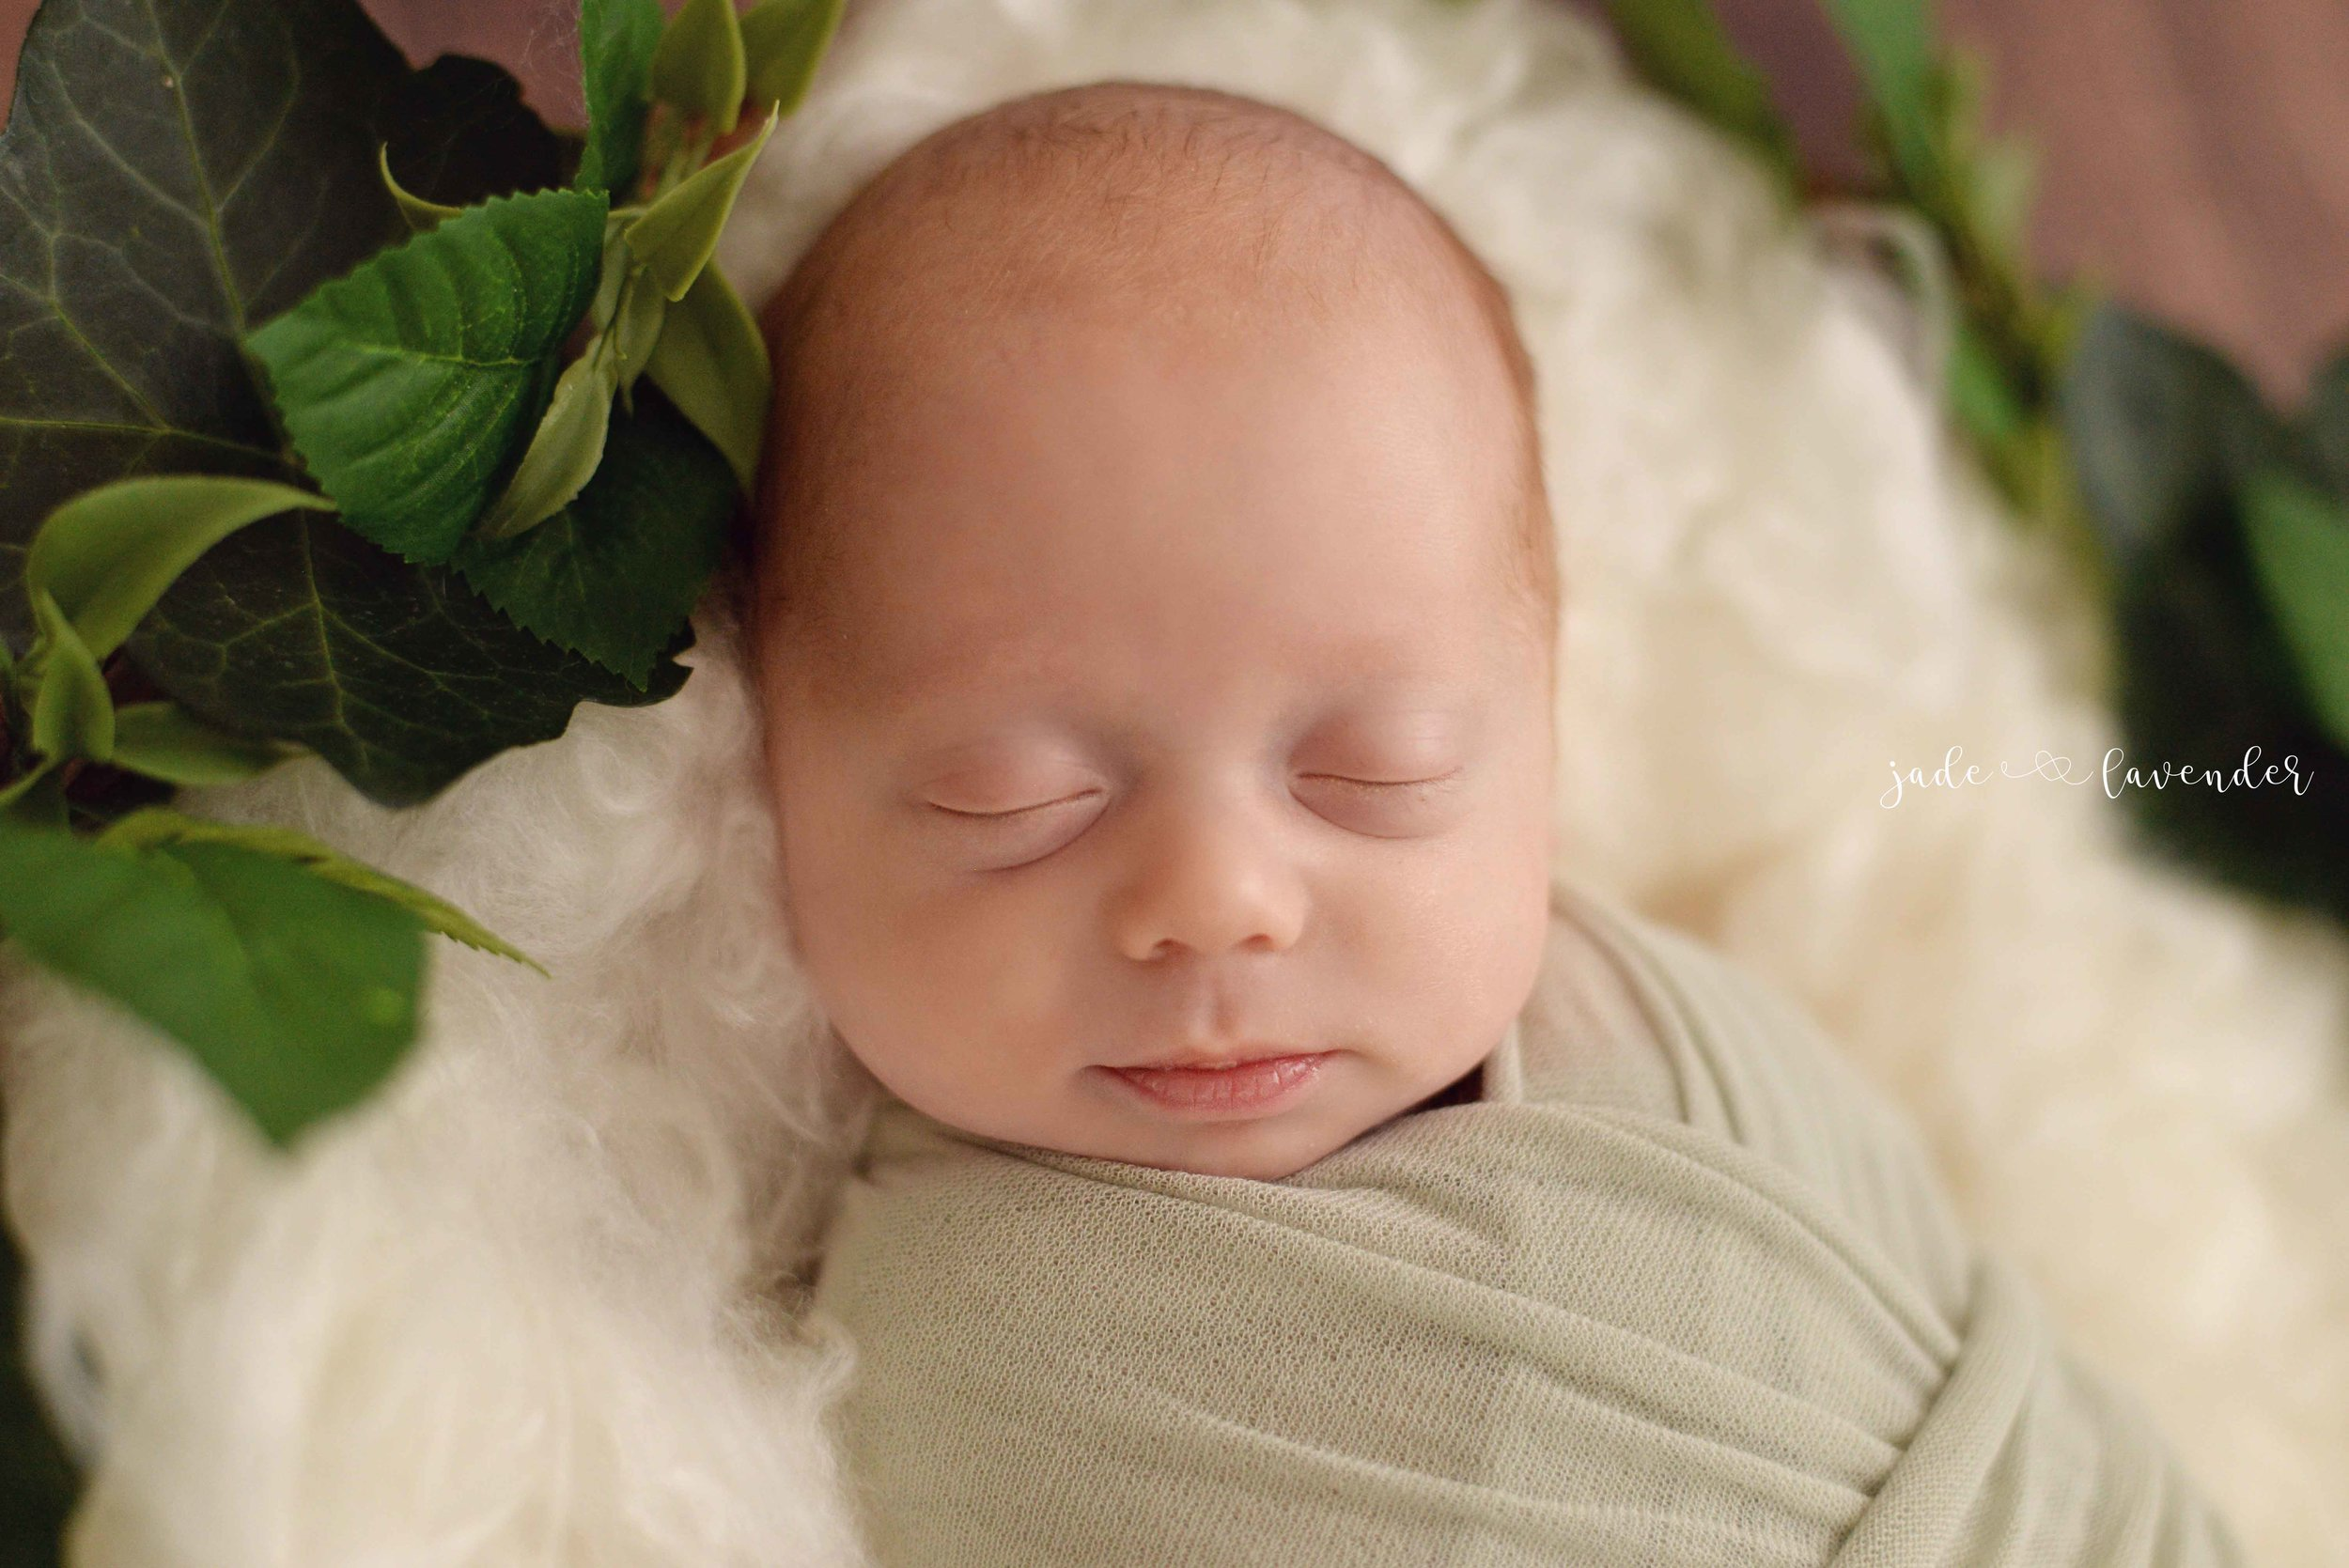 baby-photography-newborn-family-photos-spokane-washington.jpg